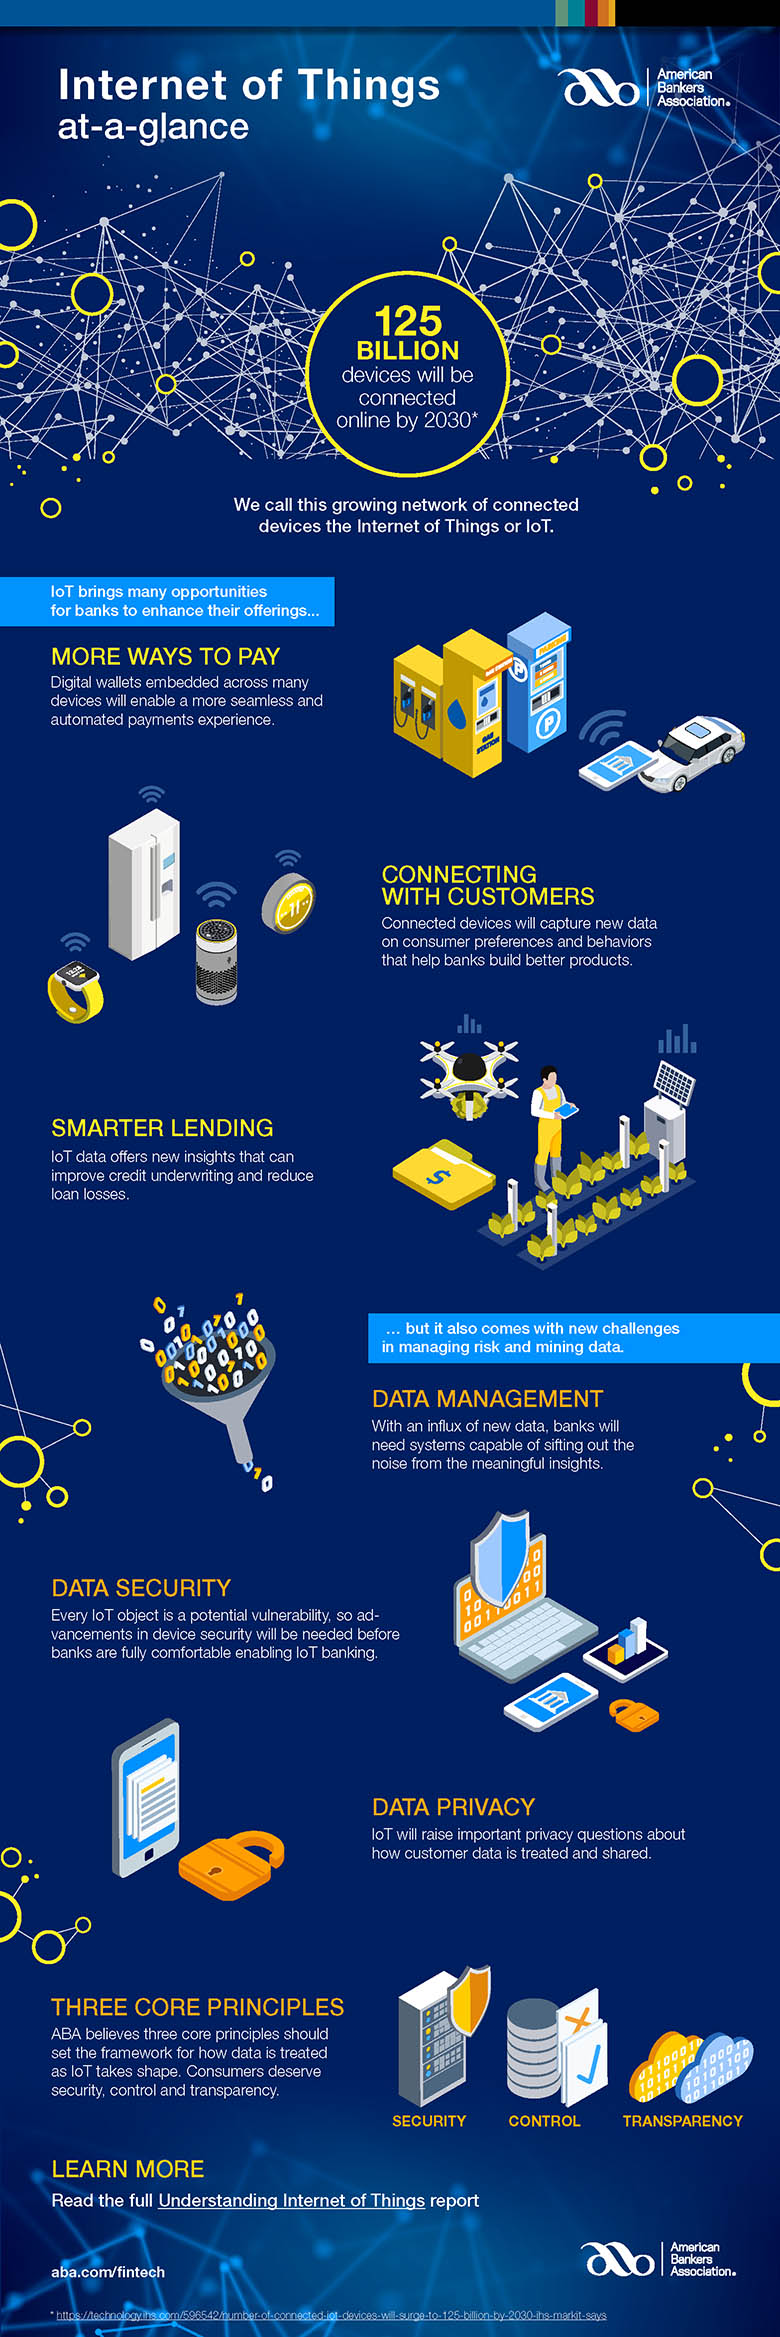 IoT At a Glance